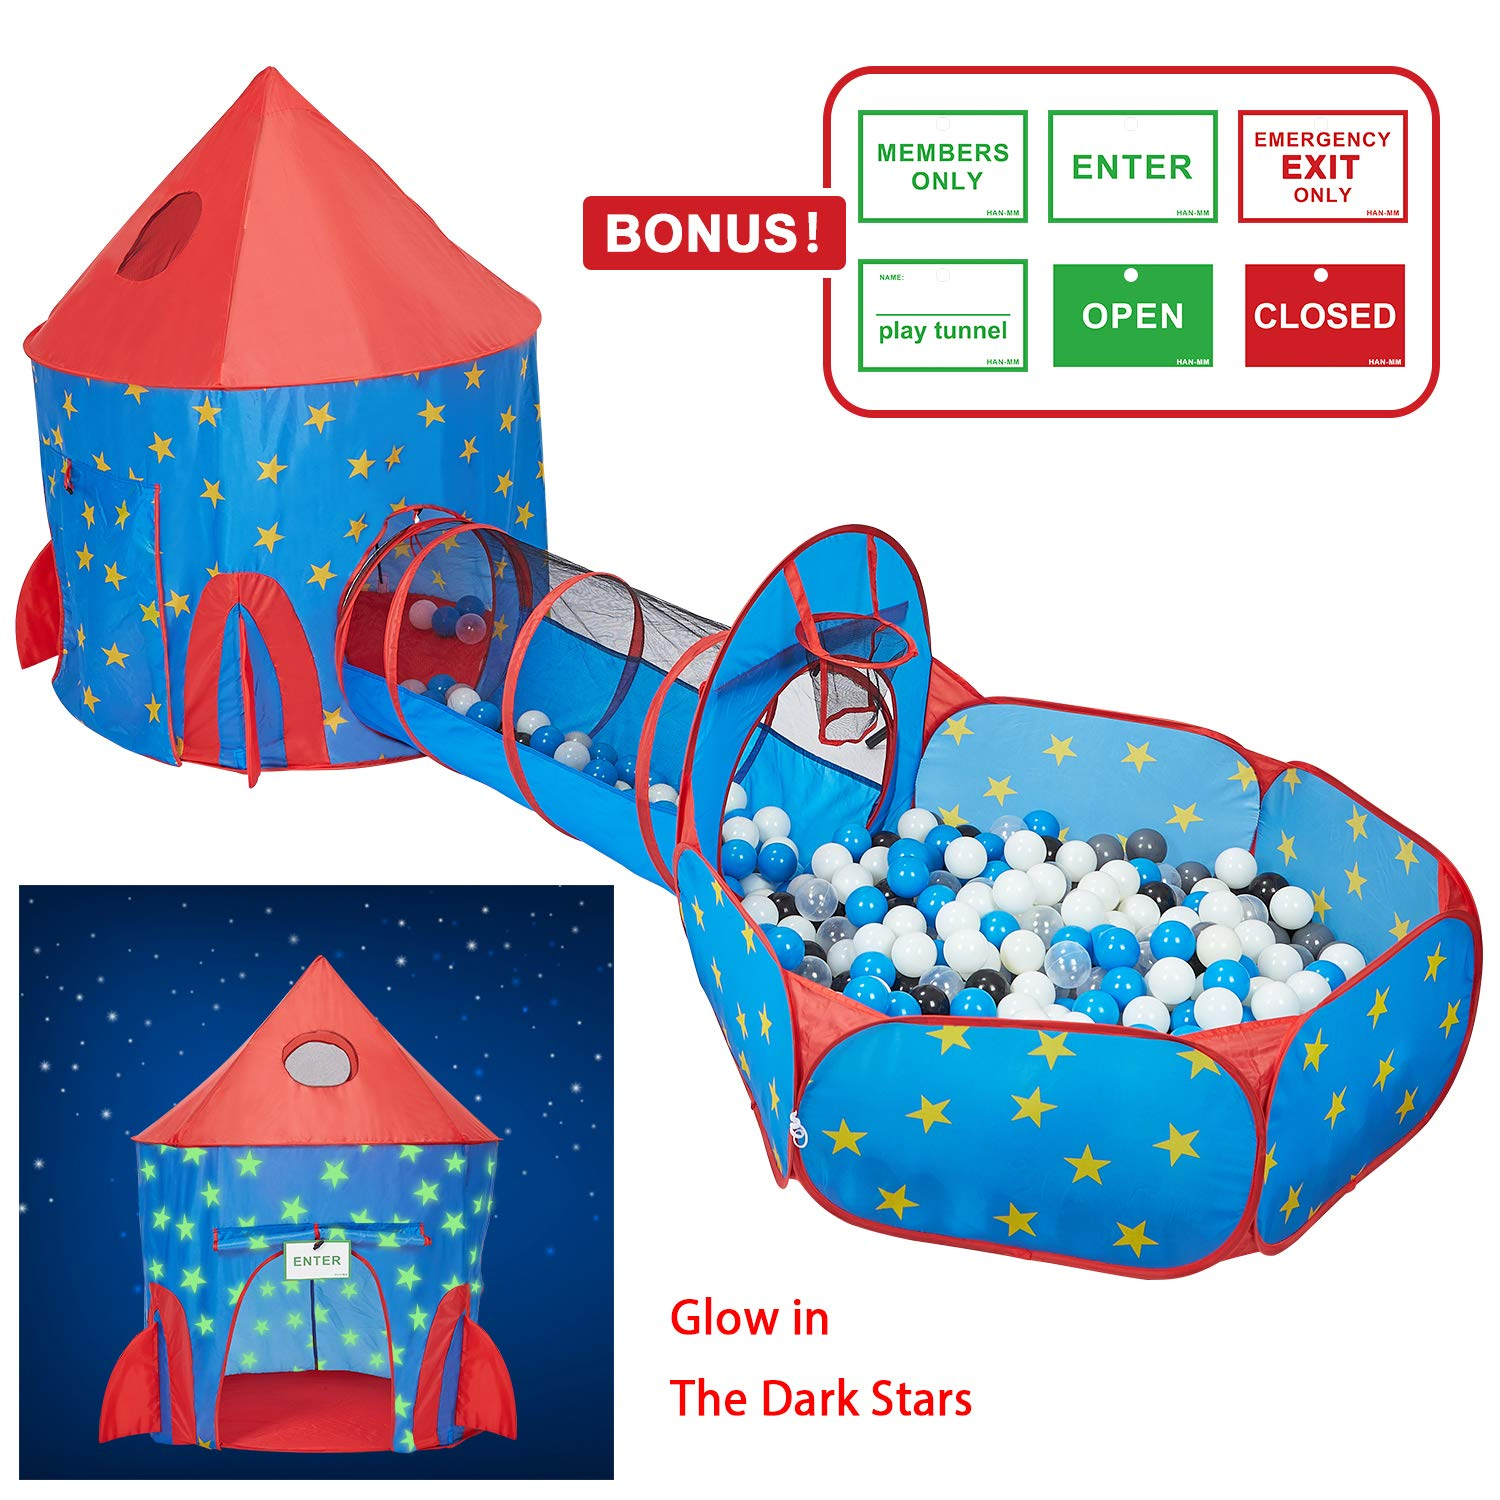 HAN-MM 3pc Kids Play Tent with Tunnel Glow in The Dark Stars, Tunnel & Ball Pit Basketball Rocket Ship Astronaut Hoop Toys with Bonus Message Signs for Indoor Outdoor Camping Children Activity Center